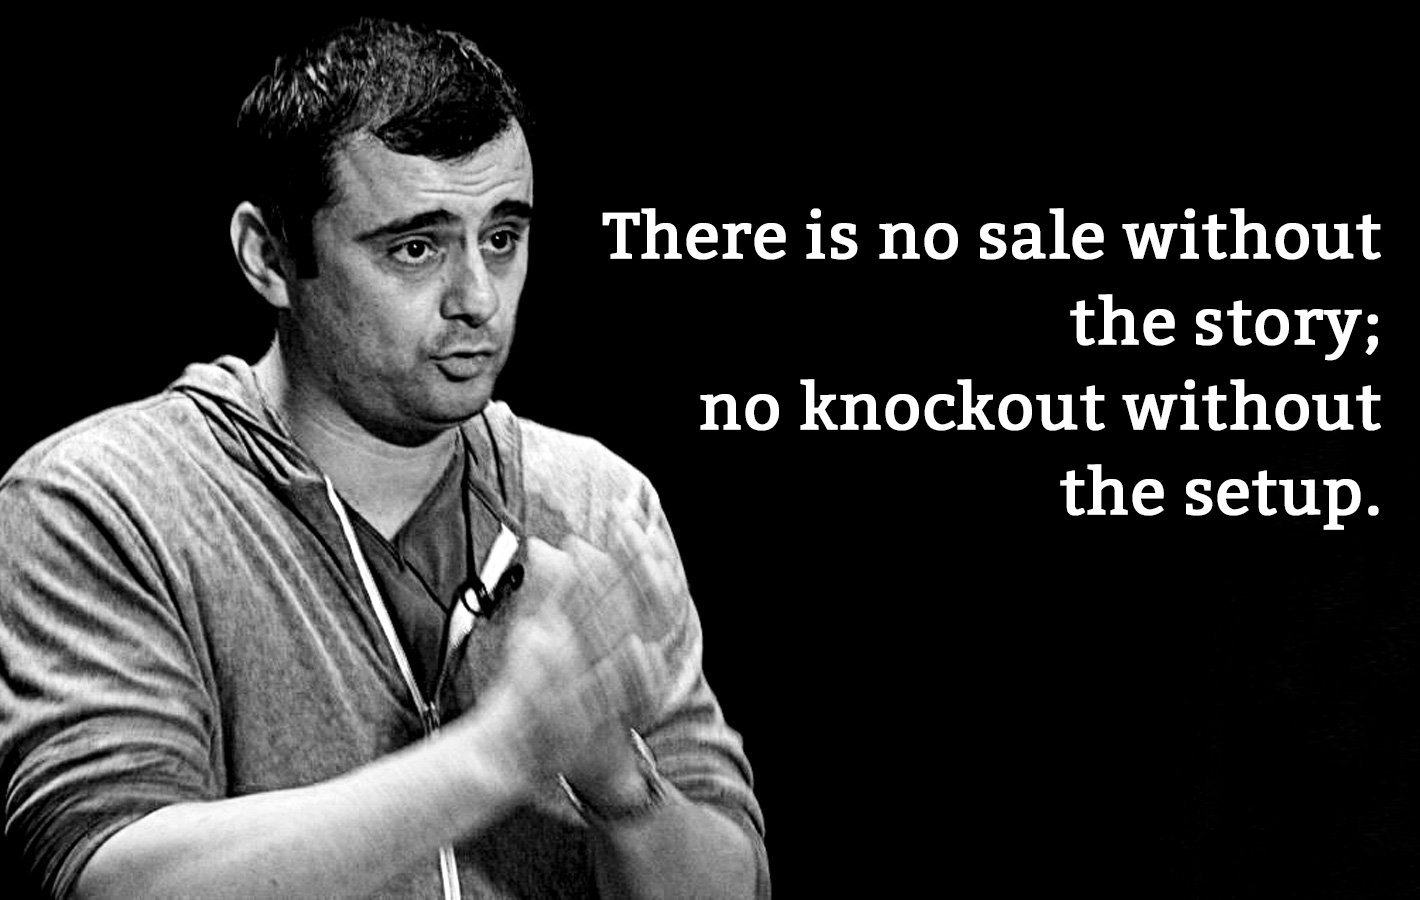 Quote by Gary Vaynerchuk from Jab, Jab, Jab, Right Hook